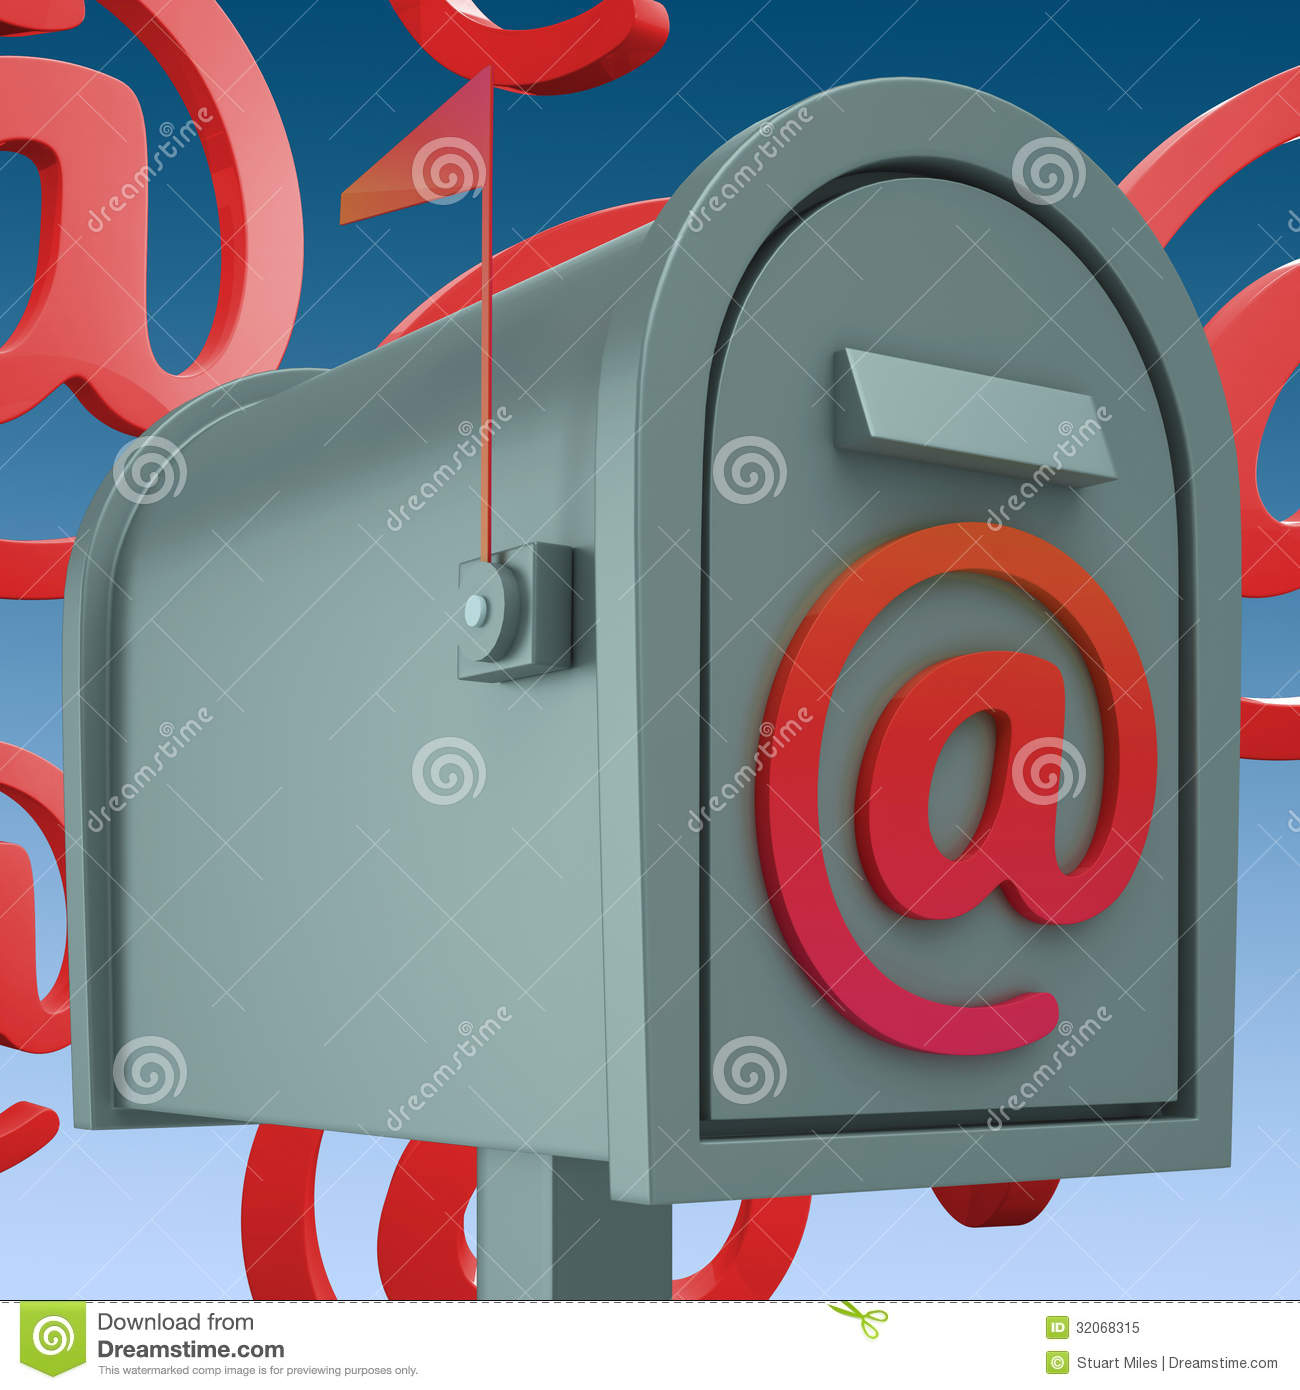 how to delete an email in outbox